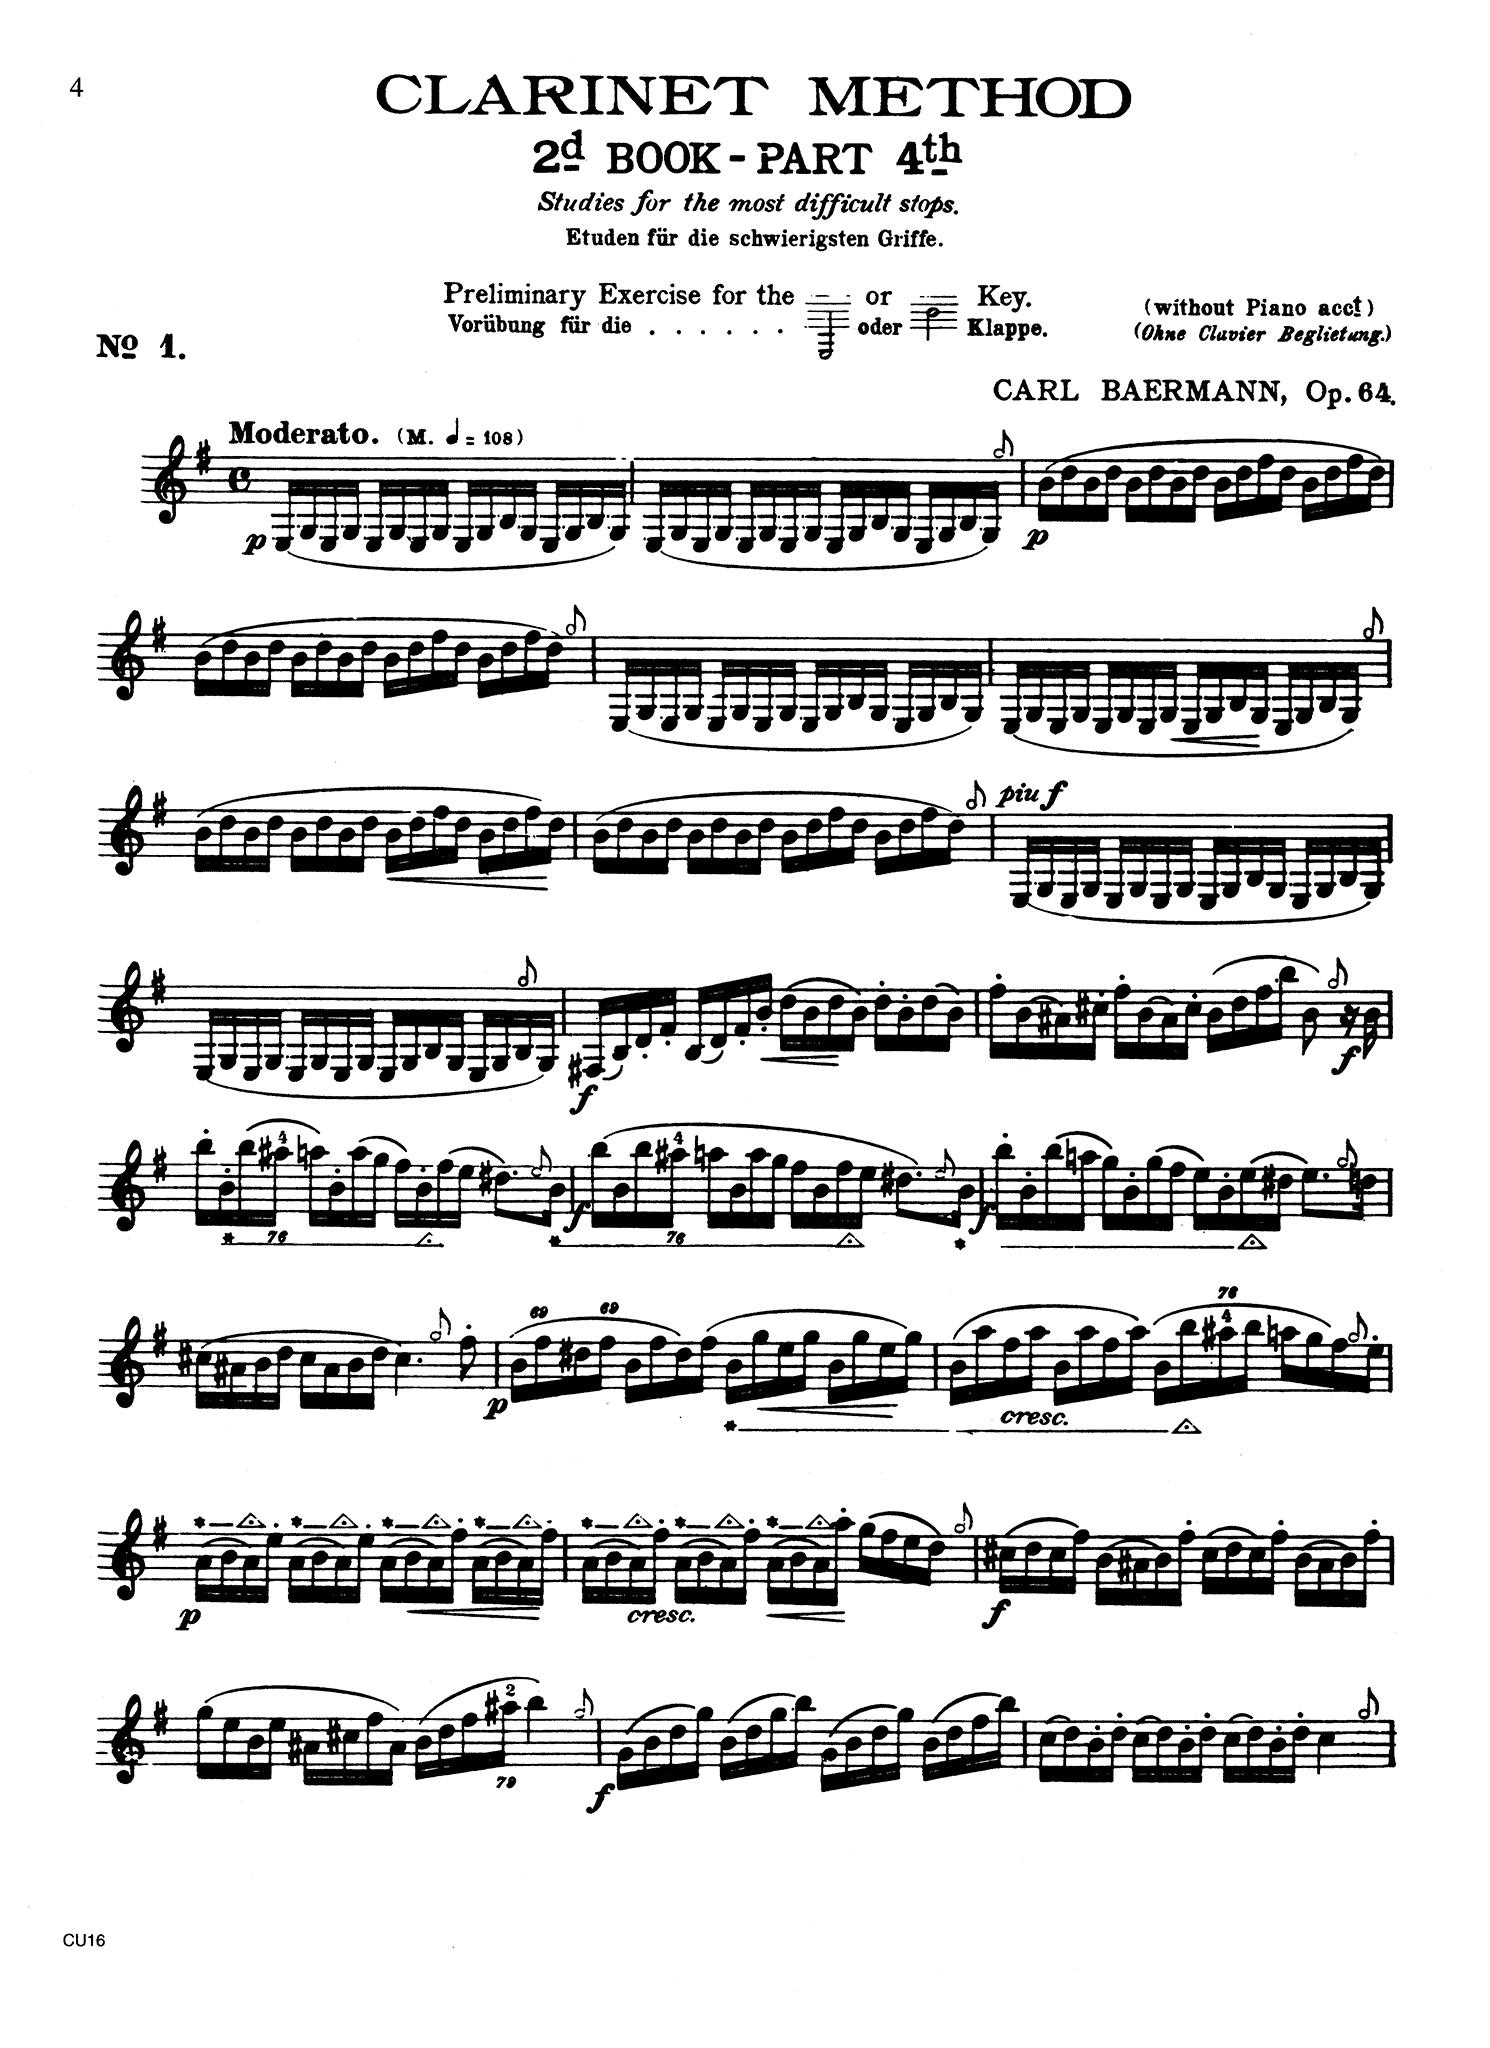 Complete Clarinet Method, Op. 64: Division 4 Page 4